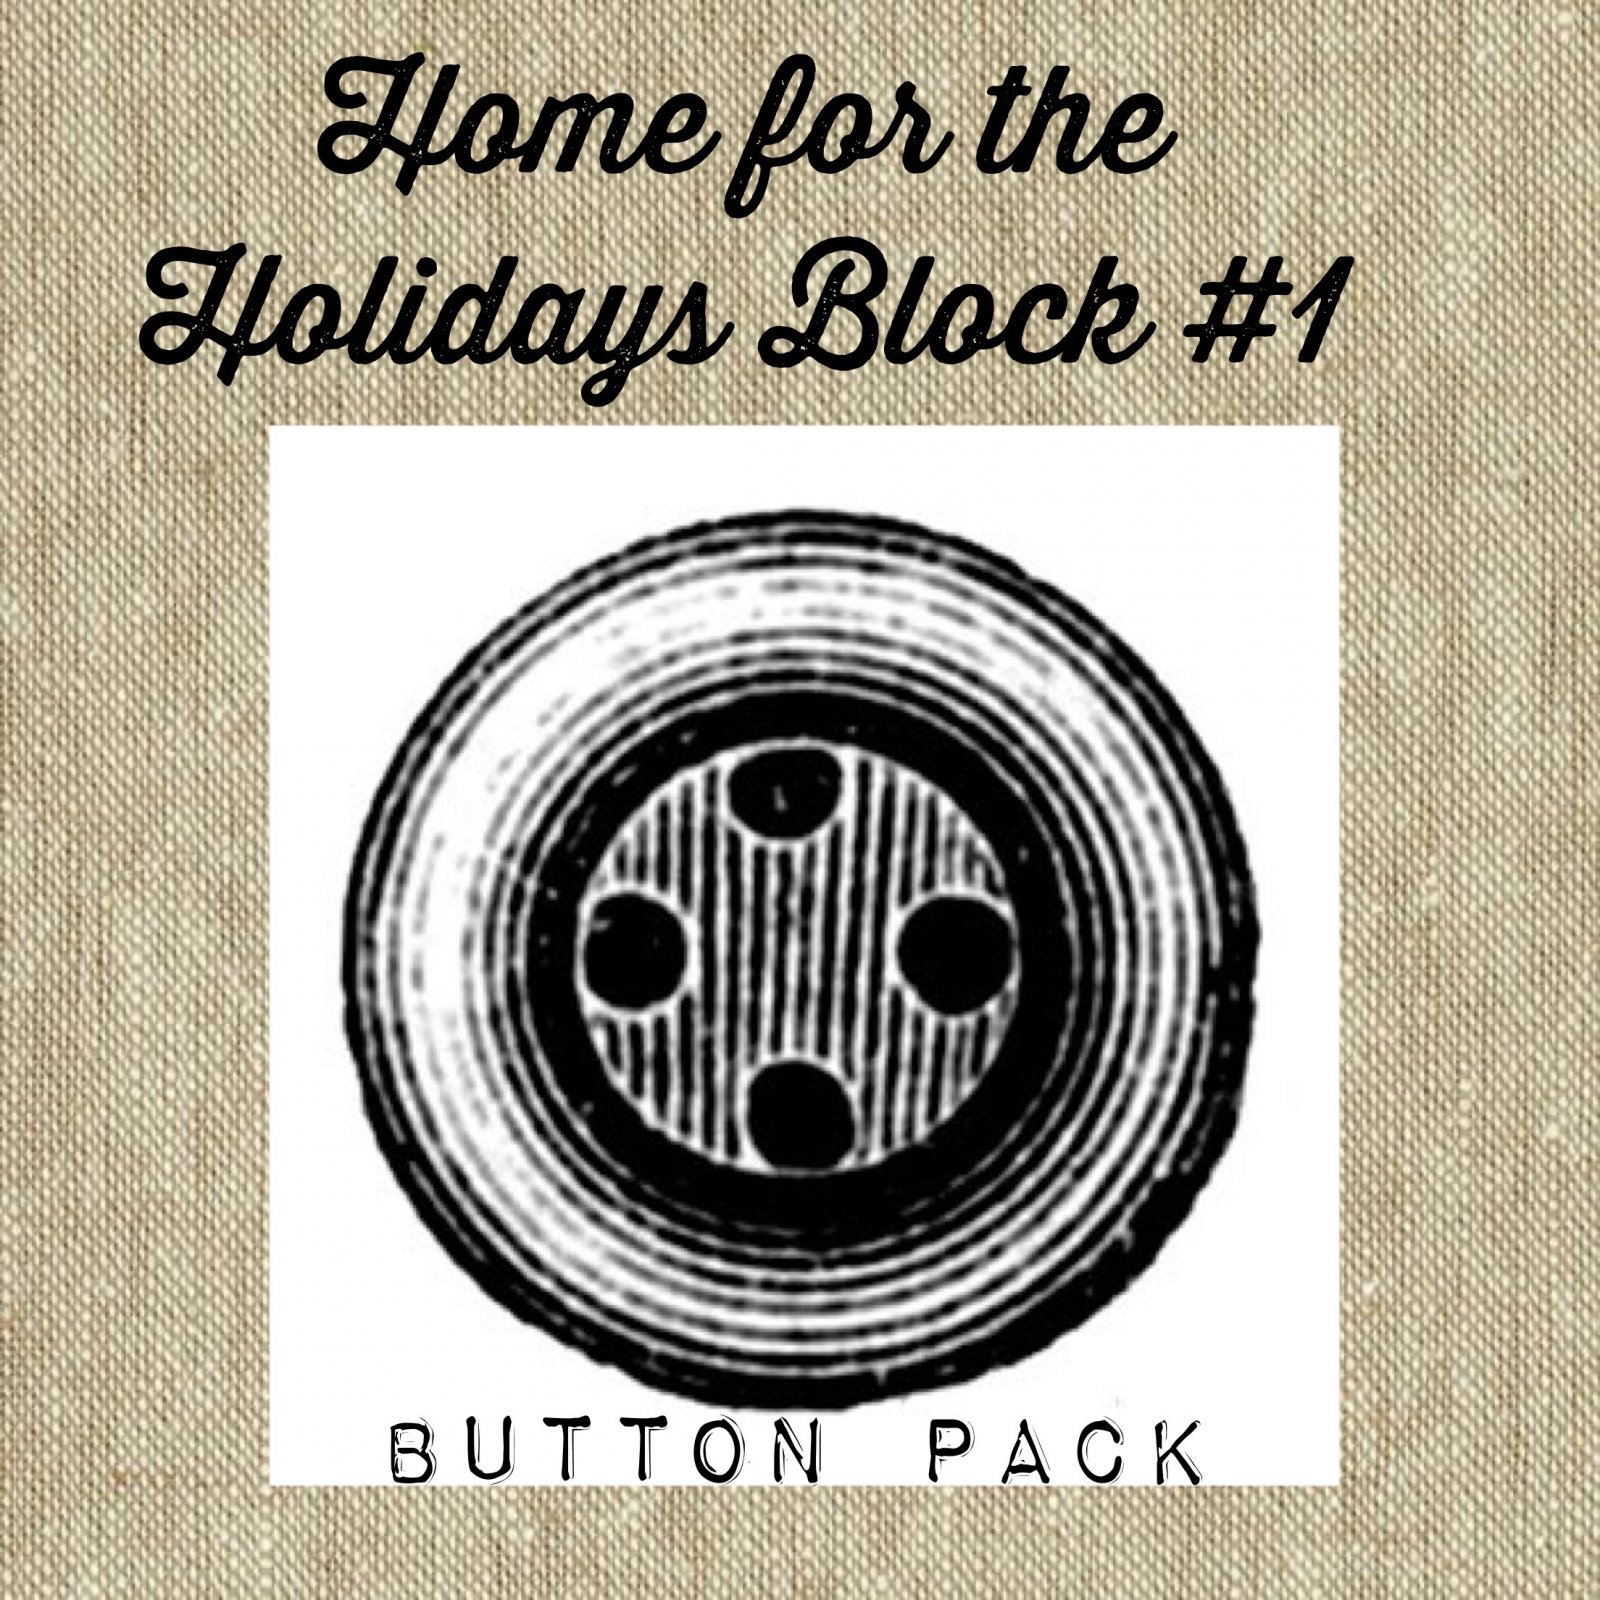 Home For The Holidays BOW! Block #1 Button Pack